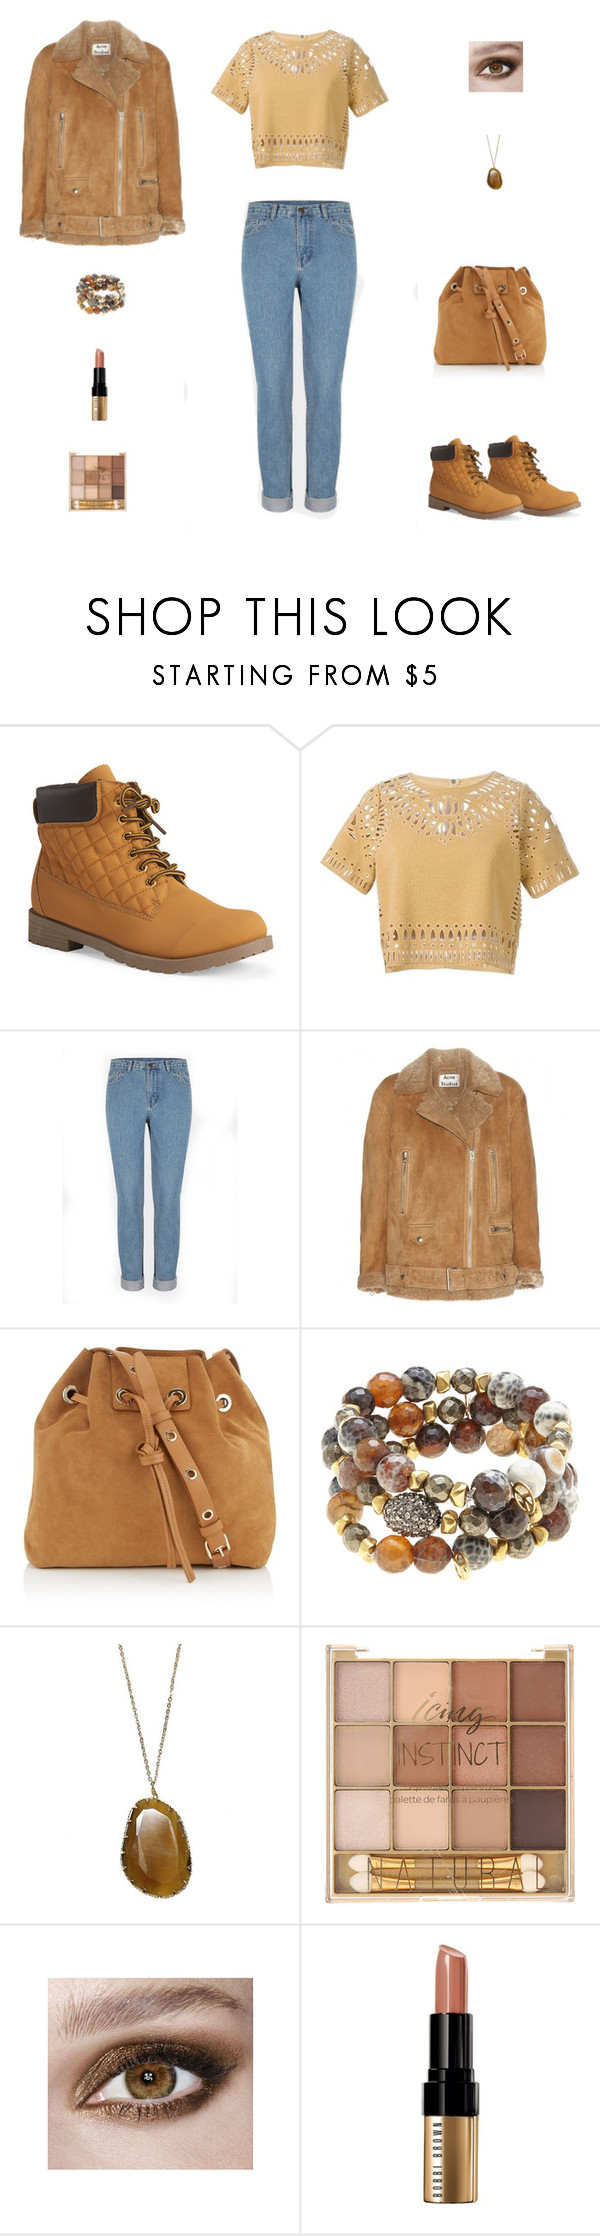 """""""Contest: Caramel Suede Outfit"""" by billsacred ❤ liked on Polyvore featuring Mode, Aéropostale, Sea, New York, Acne Studios, Vanessa Bruno, Hipchik und Bobbi Brown Cosmetics"""